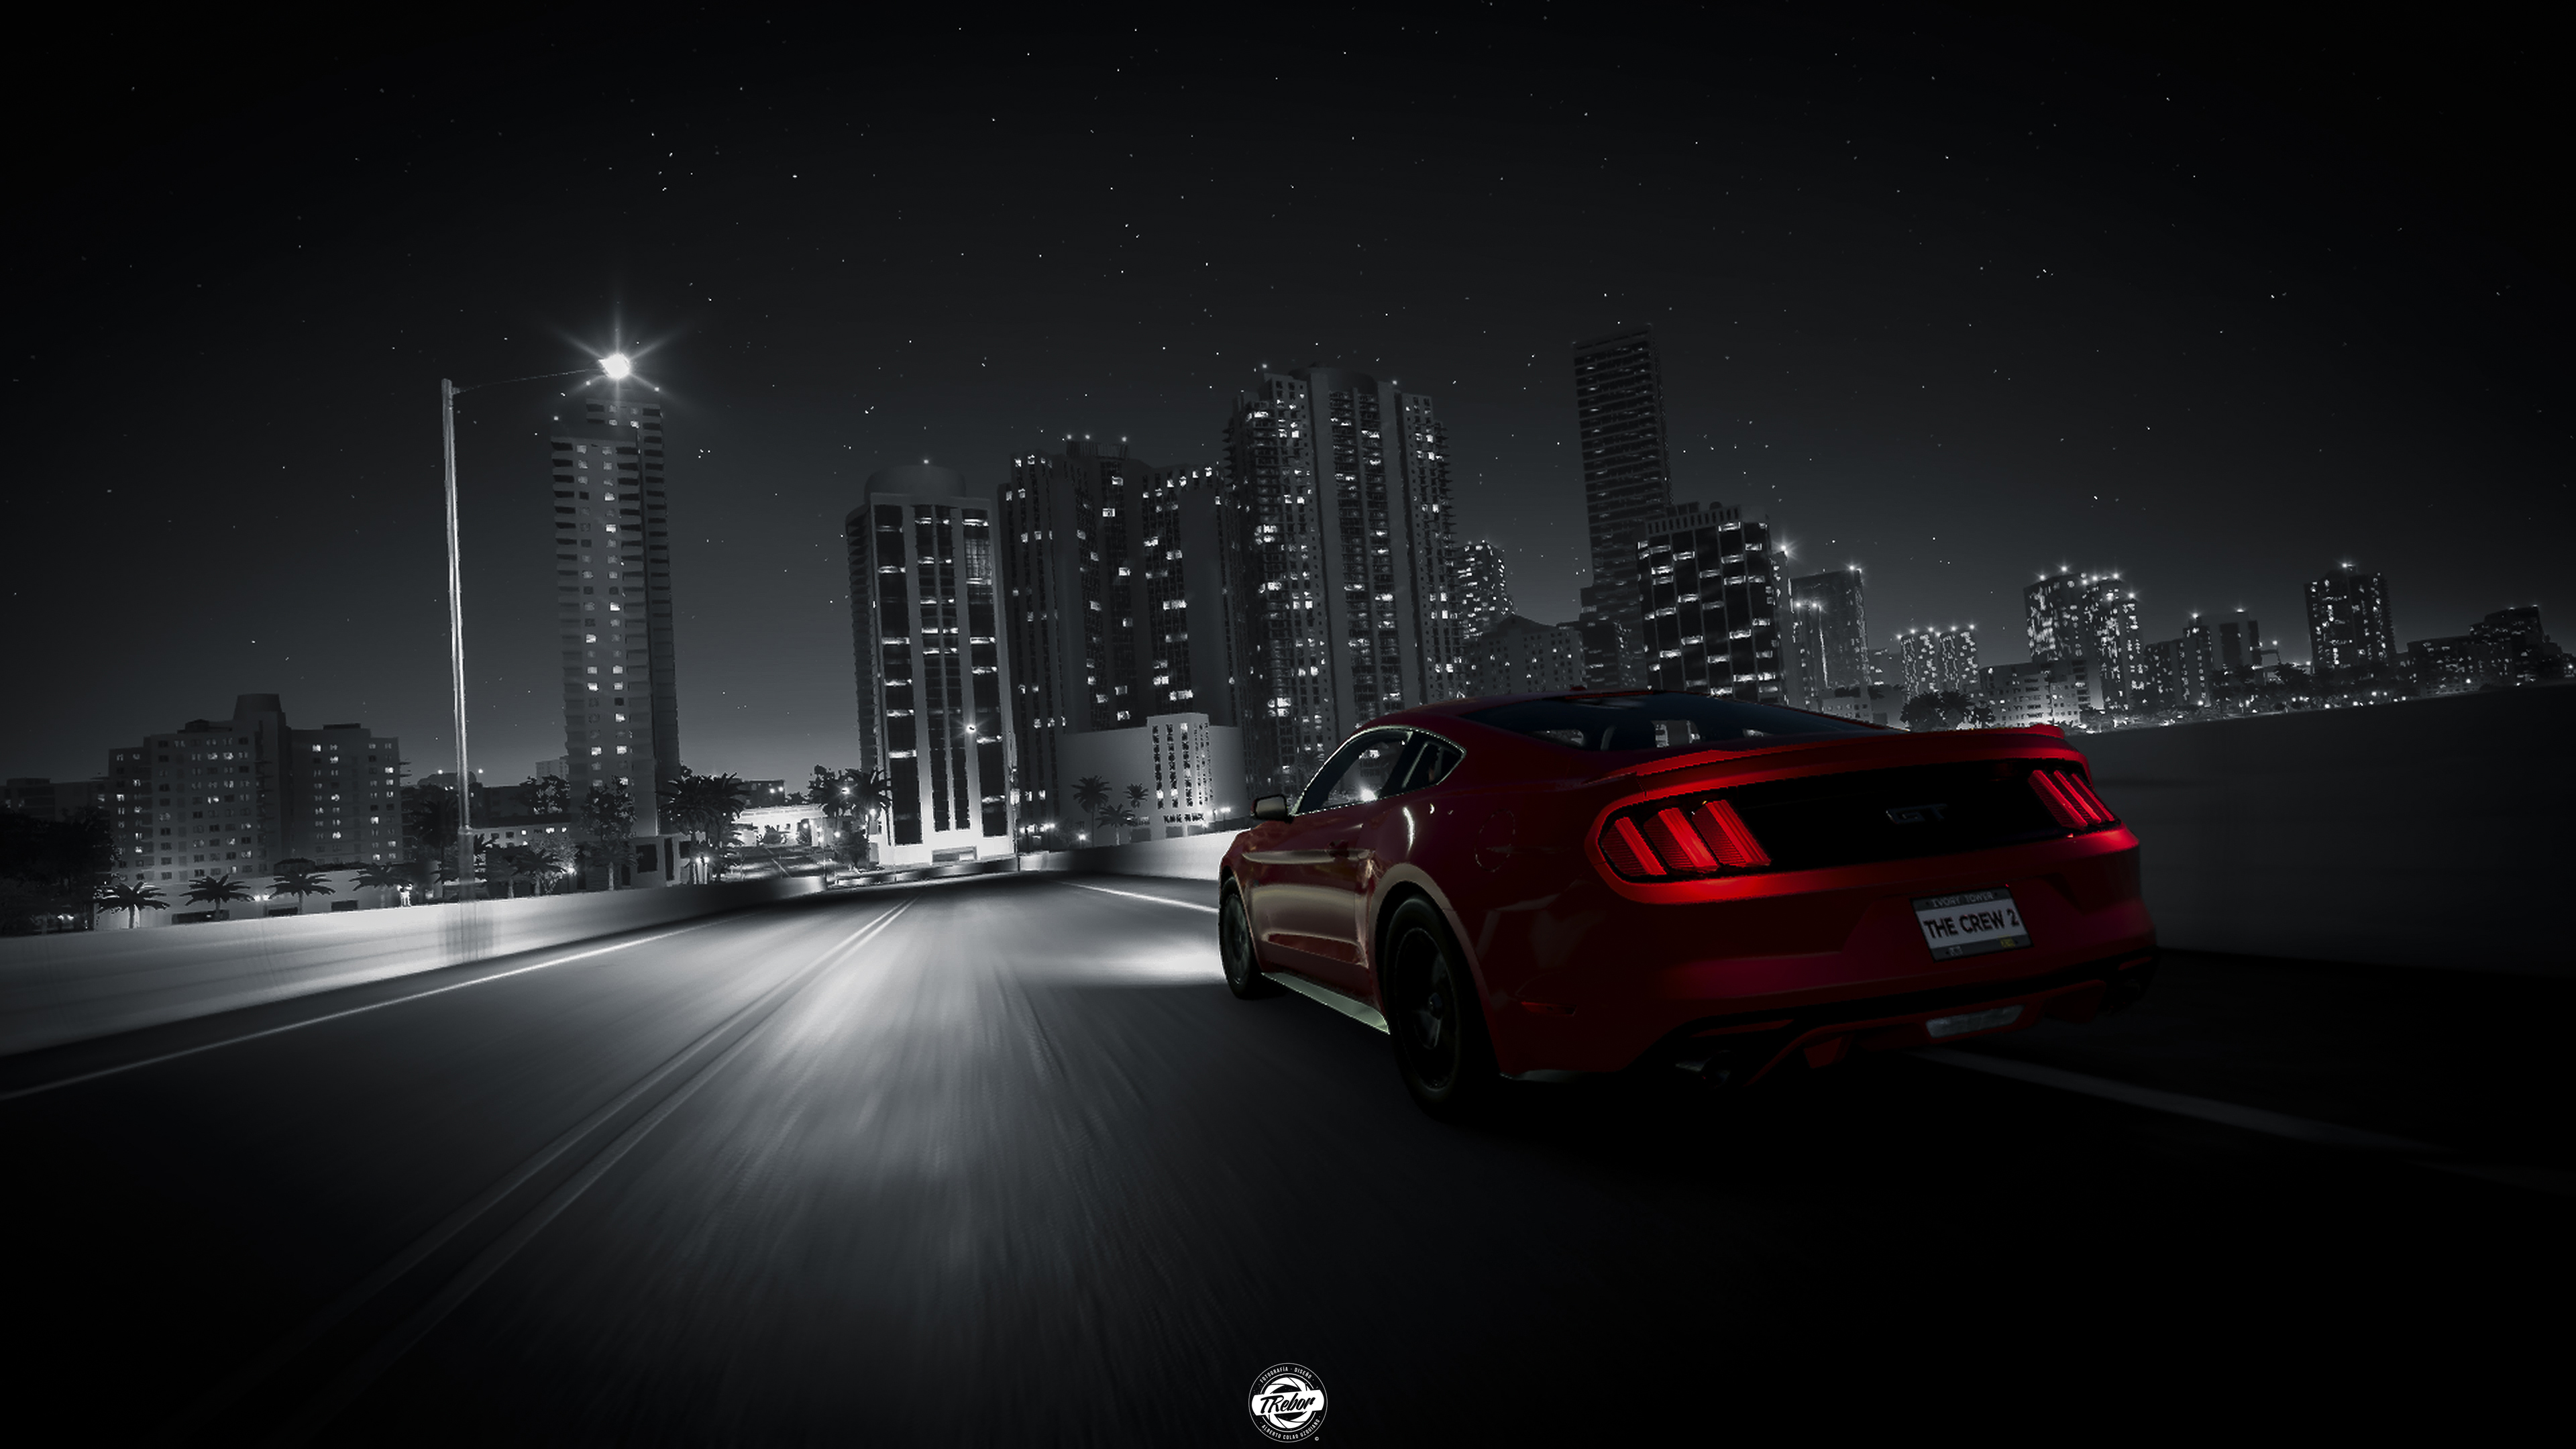 the crew 2 ford mustang rear lights 4k 1537690279 - The Crew 2 Ford Mustang Rear Lights 4k - xbox games wallpapers, the crew wallpapers, the crew 2 wallpapers, ps games wallpapers, pc games wallpapers, hd-wallpapers, games wallpapers, ford mustang wallpapers, 4k-wallpapers